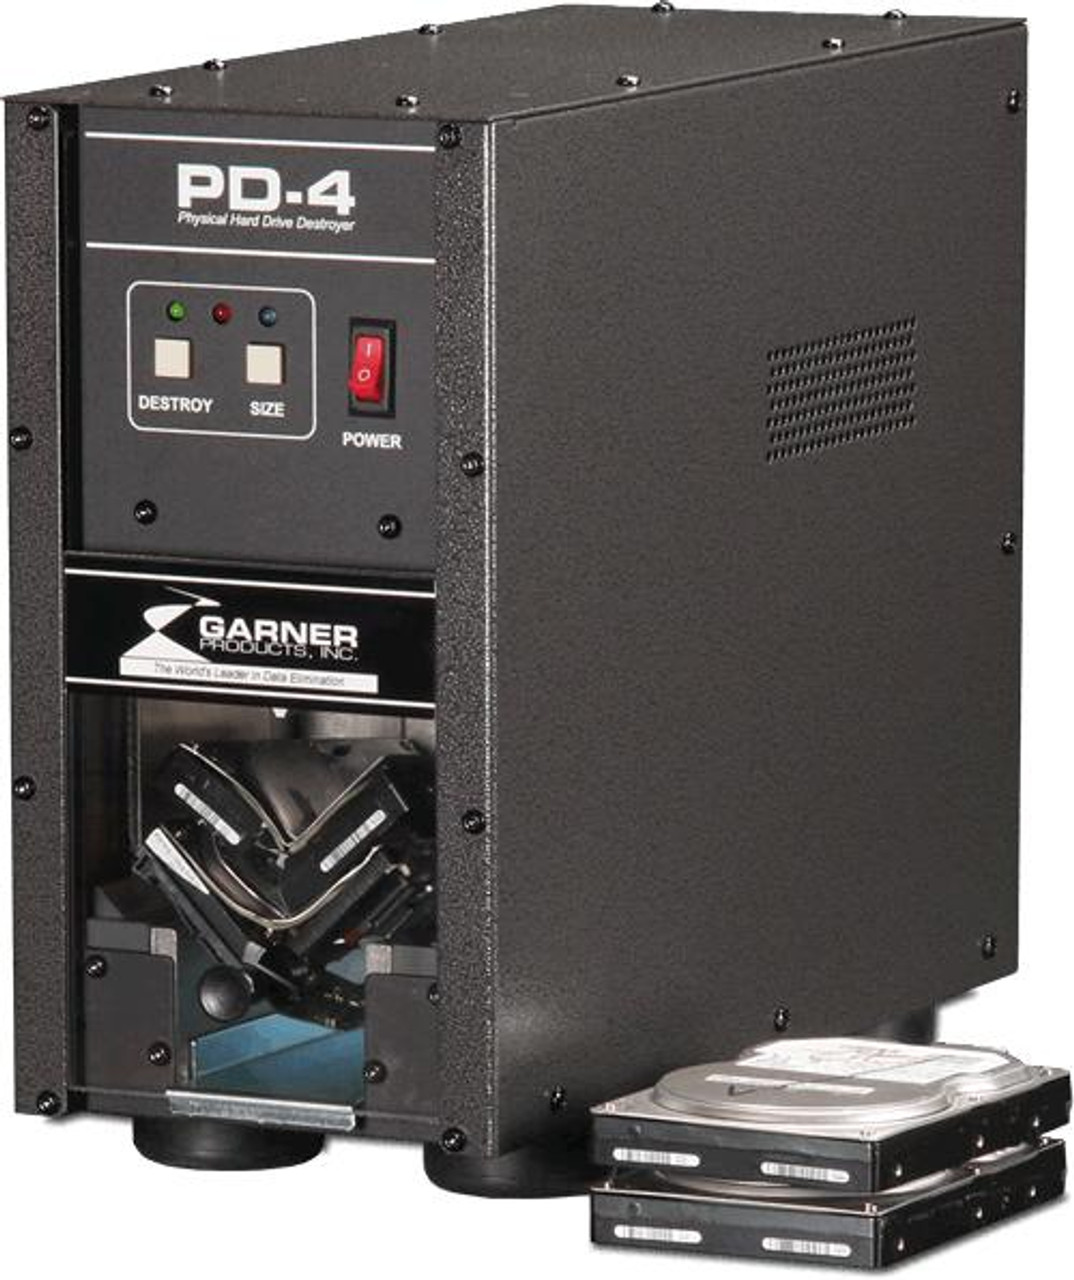 PD-4 Physical Hard Drive Destroyer